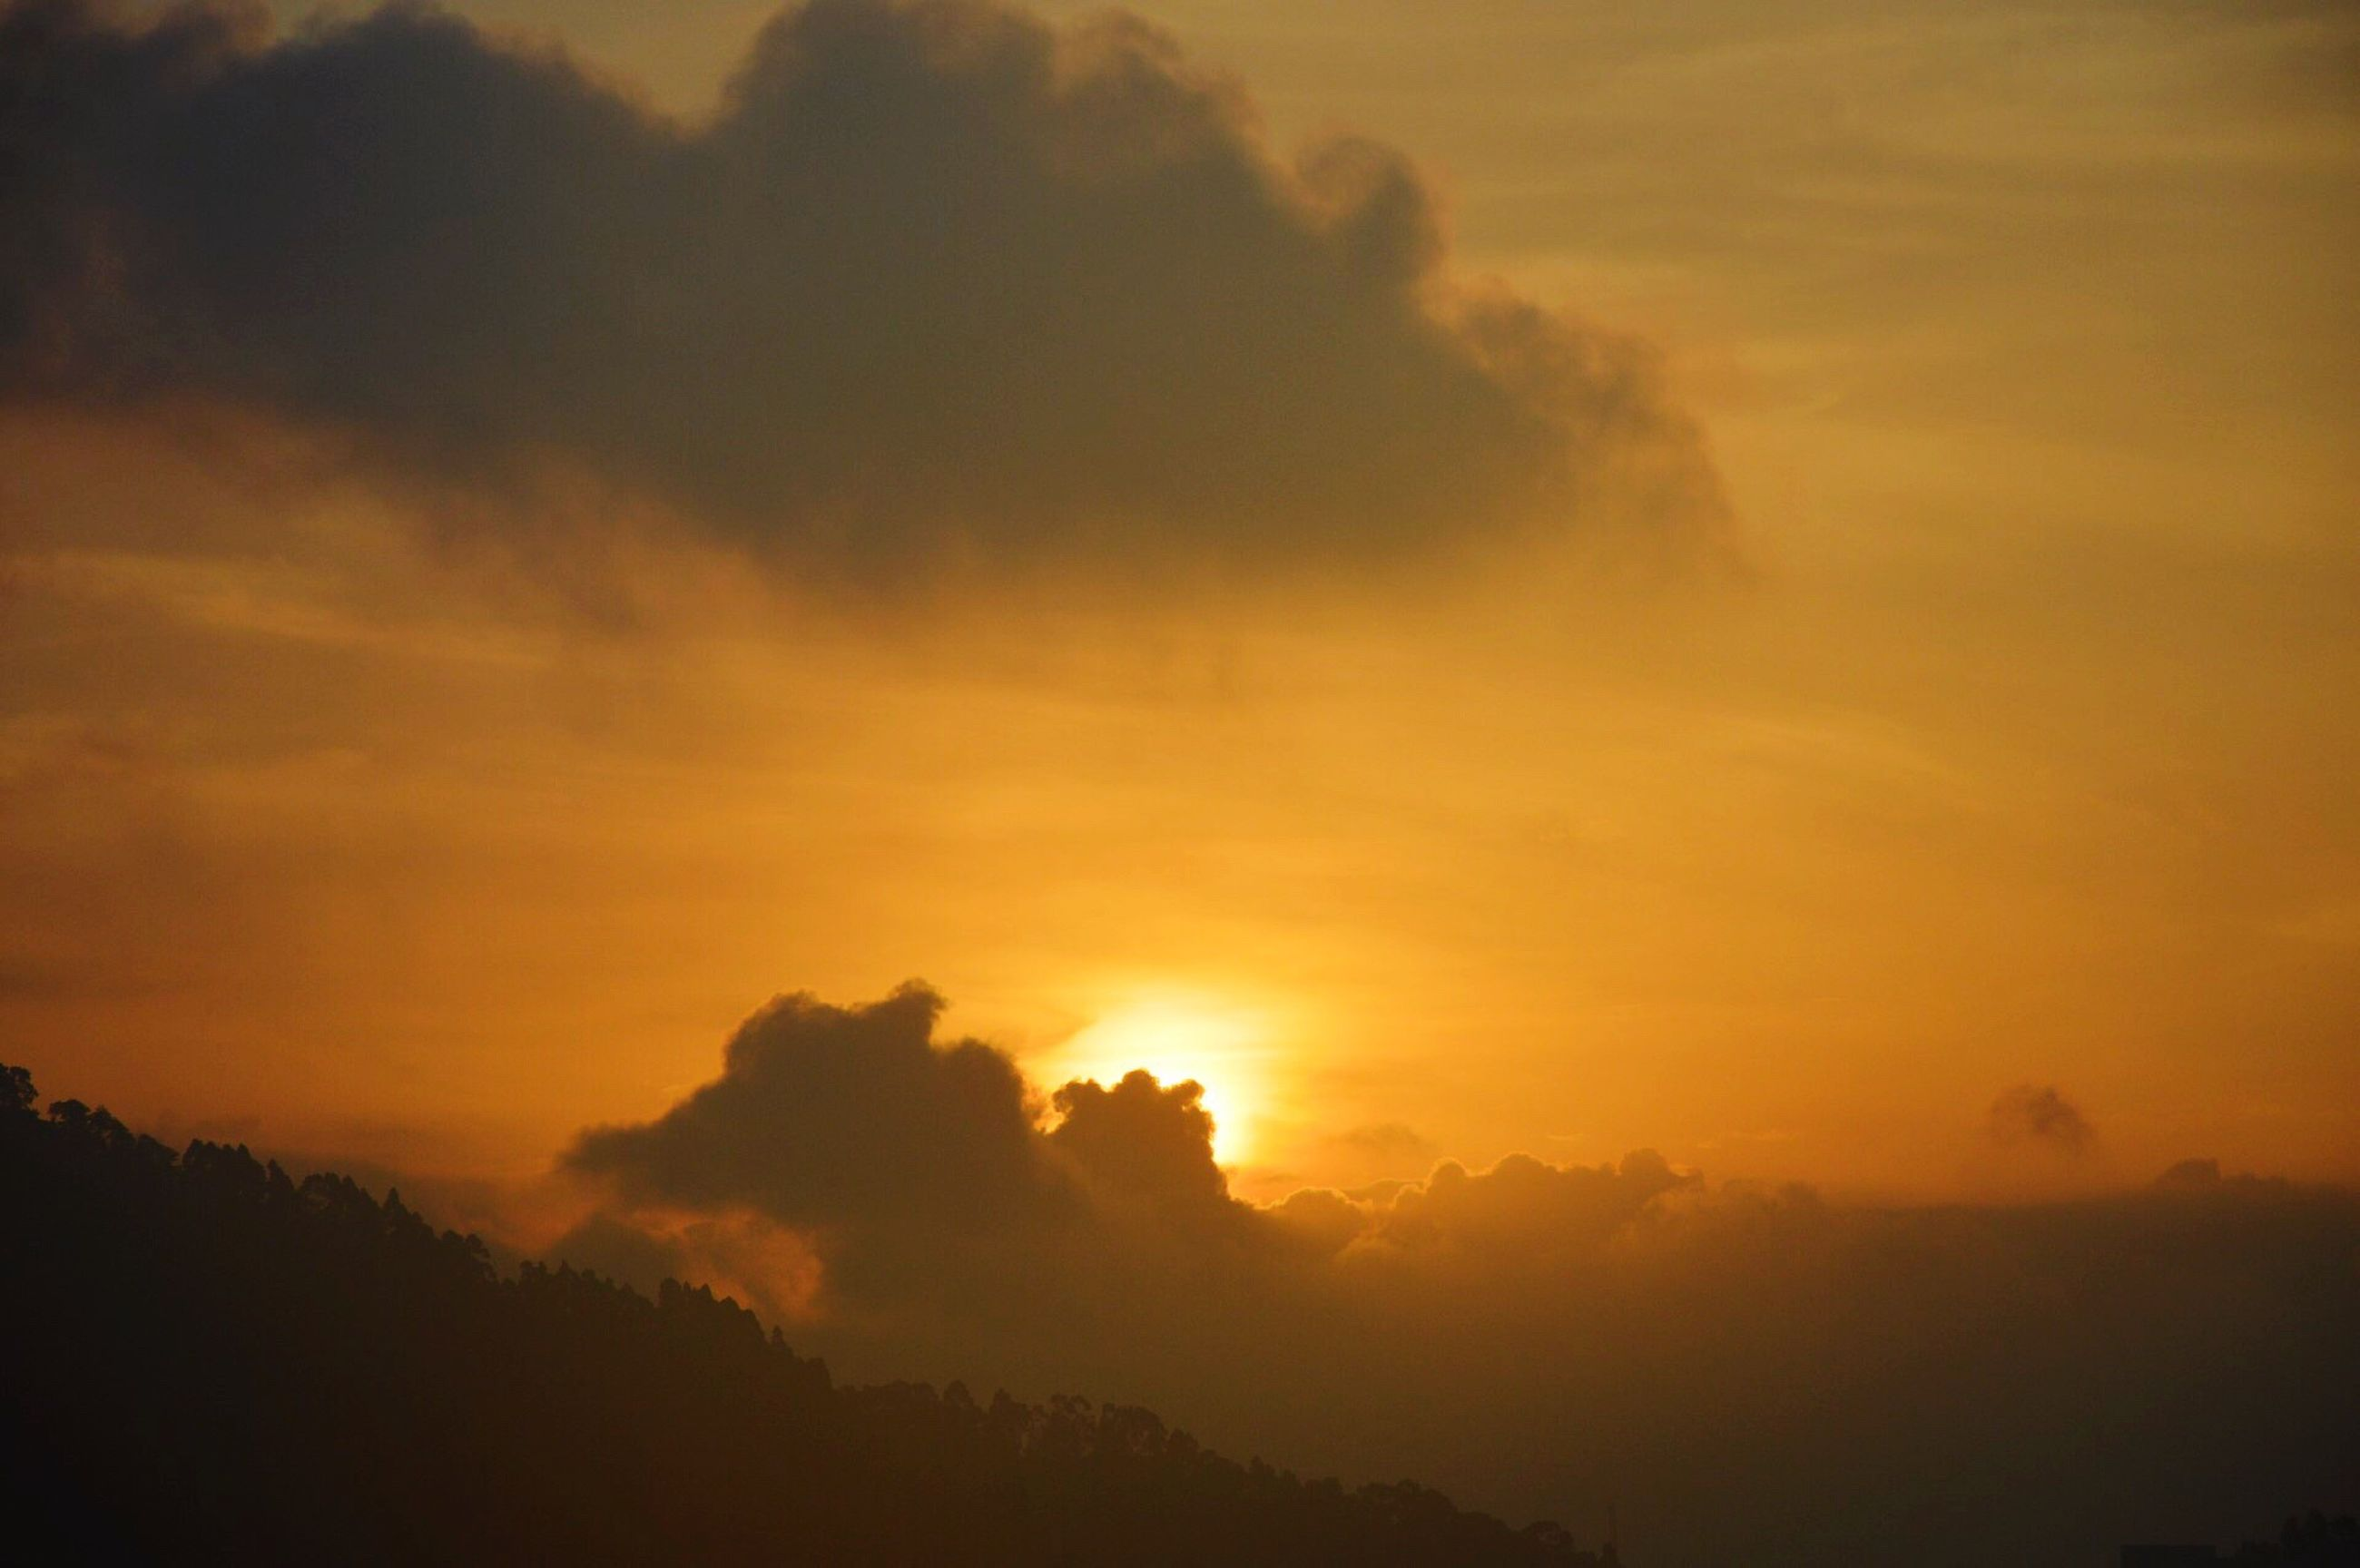 sunset, silhouette, orange color, scenics, beauty in nature, sky, tranquil scene, tranquility, cloud - sky, idyllic, nature, dramatic sky, sun, majestic, cloud, low angle view, outdoors, no people, sunlight, moody sky